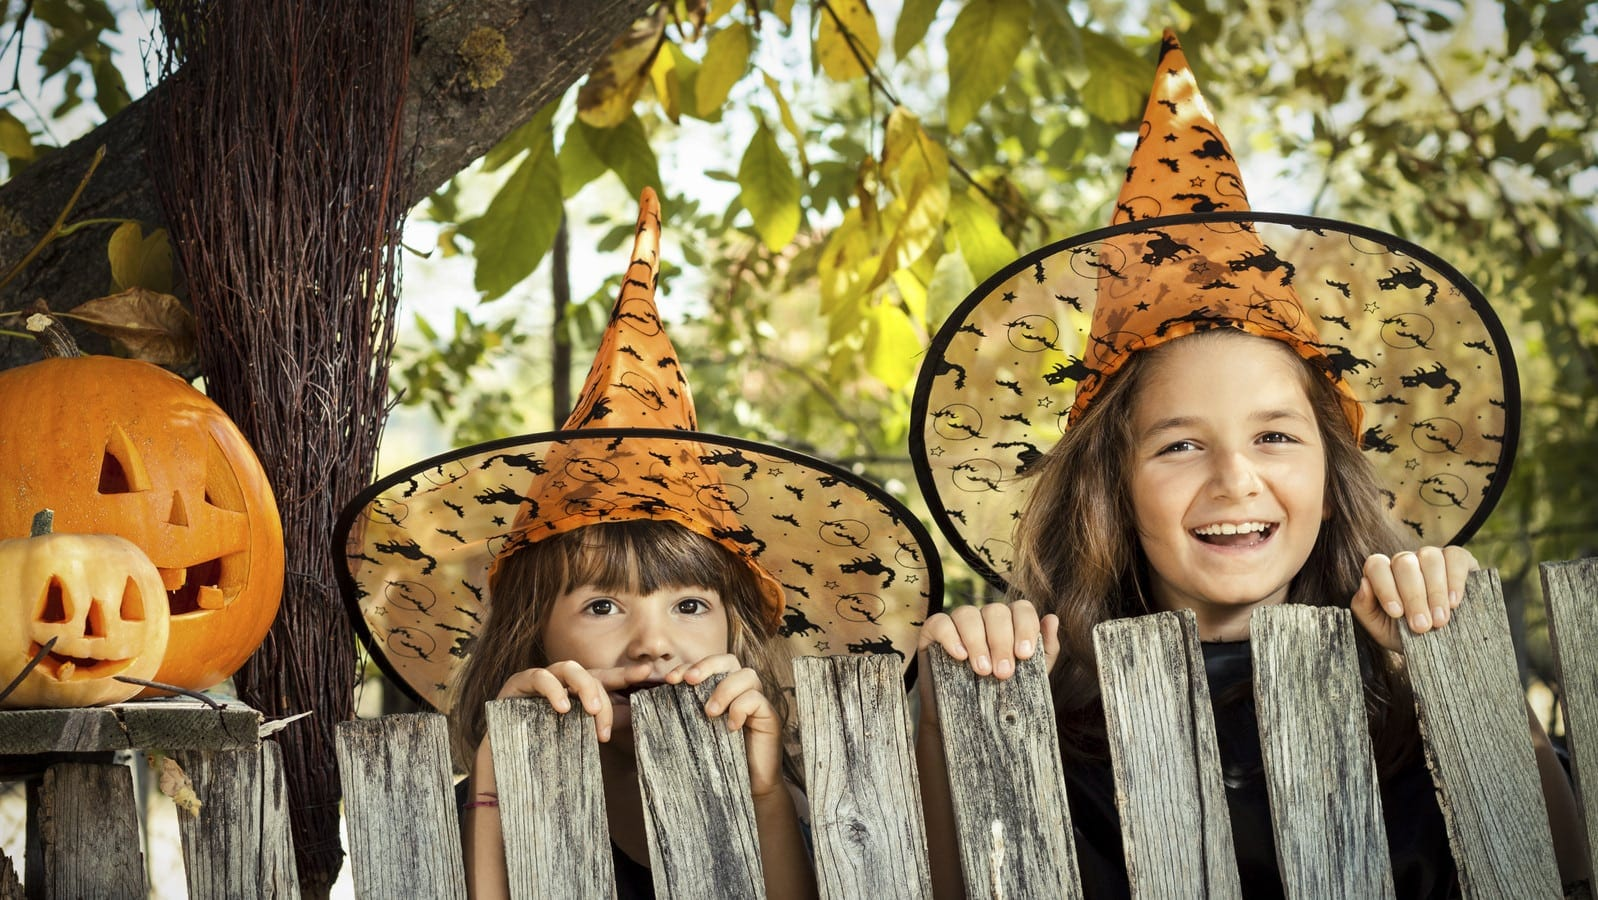 Children dressed as witches for Halloween